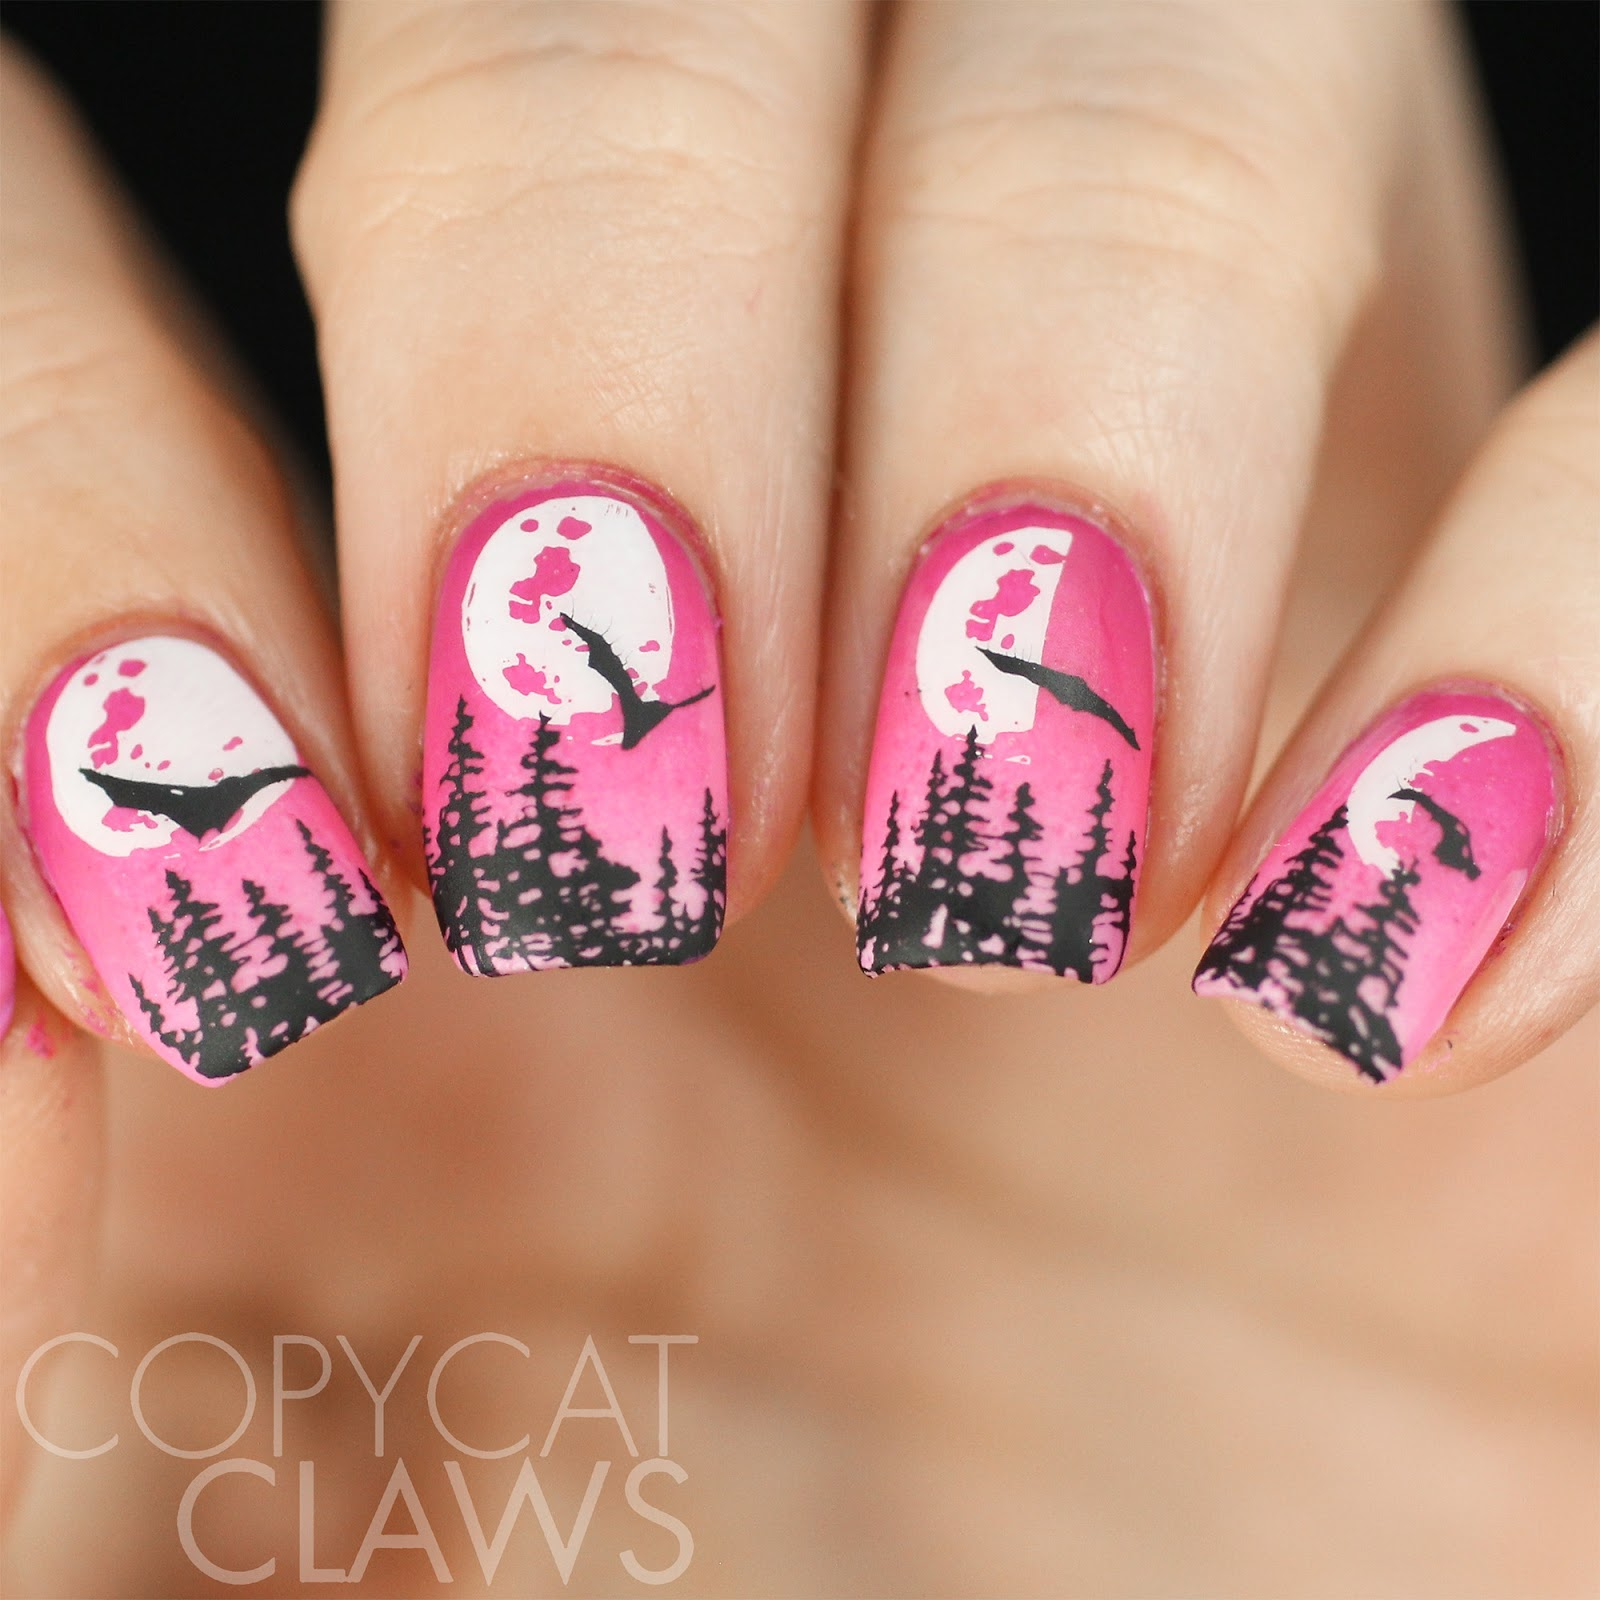 Copycat Claws: 26 Great Nail Art Ideas - Halloween In The Wrong Colors